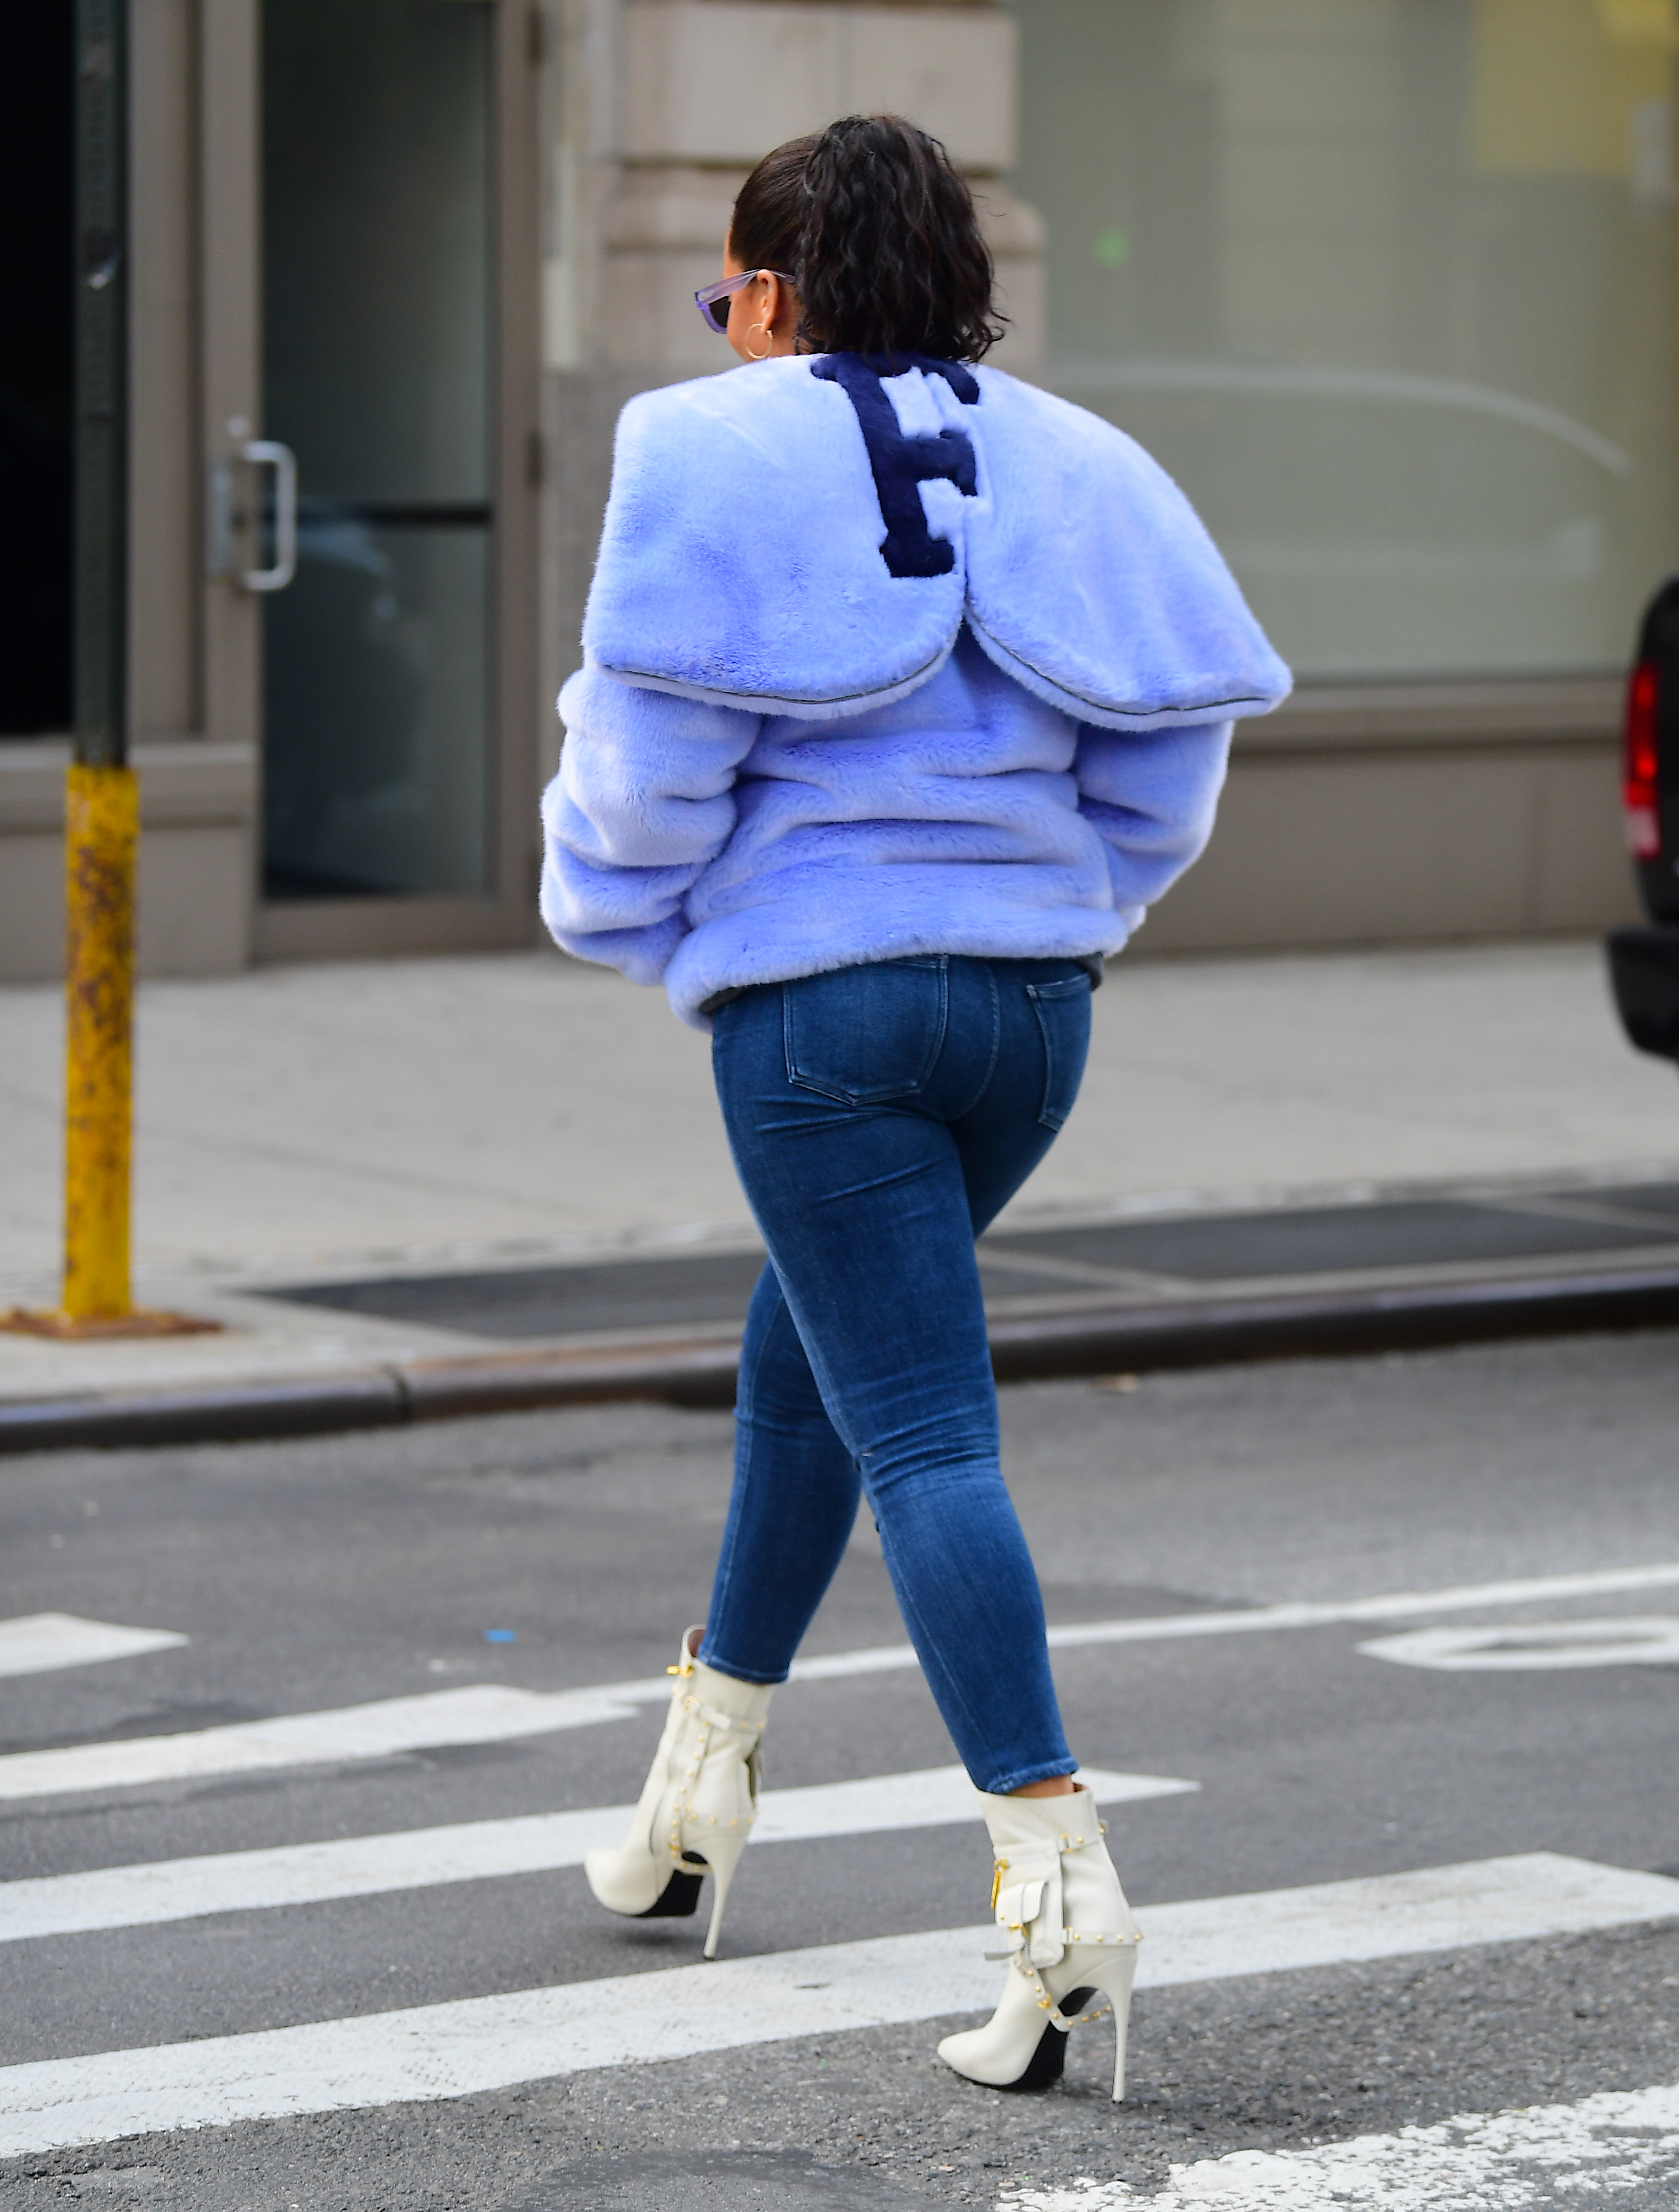 EXCLUSIVE: Rihanna was spotted out in NYC in the early hours of Friday morning. She left her apartment accompanied by a Large Bodyguard, who was given the embarrassing task of carrying her Porn Hub Bag. They walked around Soho before heading to The Blond Hotel. They remained inside from 2am until 8:30am . The sun was already shining bright as Riri left with a pal and headed back home. It is the second day in a row that she has been seen flaunting a giant diamond Ring on her engagement finger. She appeared in great spirits, showing off her curves in a tight fitting pair of jeans, while wearing a Powder Blue Faux Fur Hoodie, potentially a sneak preview of her new Line of Fenty clothing.  Yaken December 9th <P>  <B>Ref: SPL1635005  091217   EXCLUSIVE</B><BR/> Picture by: 247PAPS.TV / Splash News<BR/> </P><P> <B>Splash News and Pictures</B><BR/> Los Angeles:310-821-2666<BR/> New York:212-619-2666<BR/> London:870-934-2666<BR/> <span id=